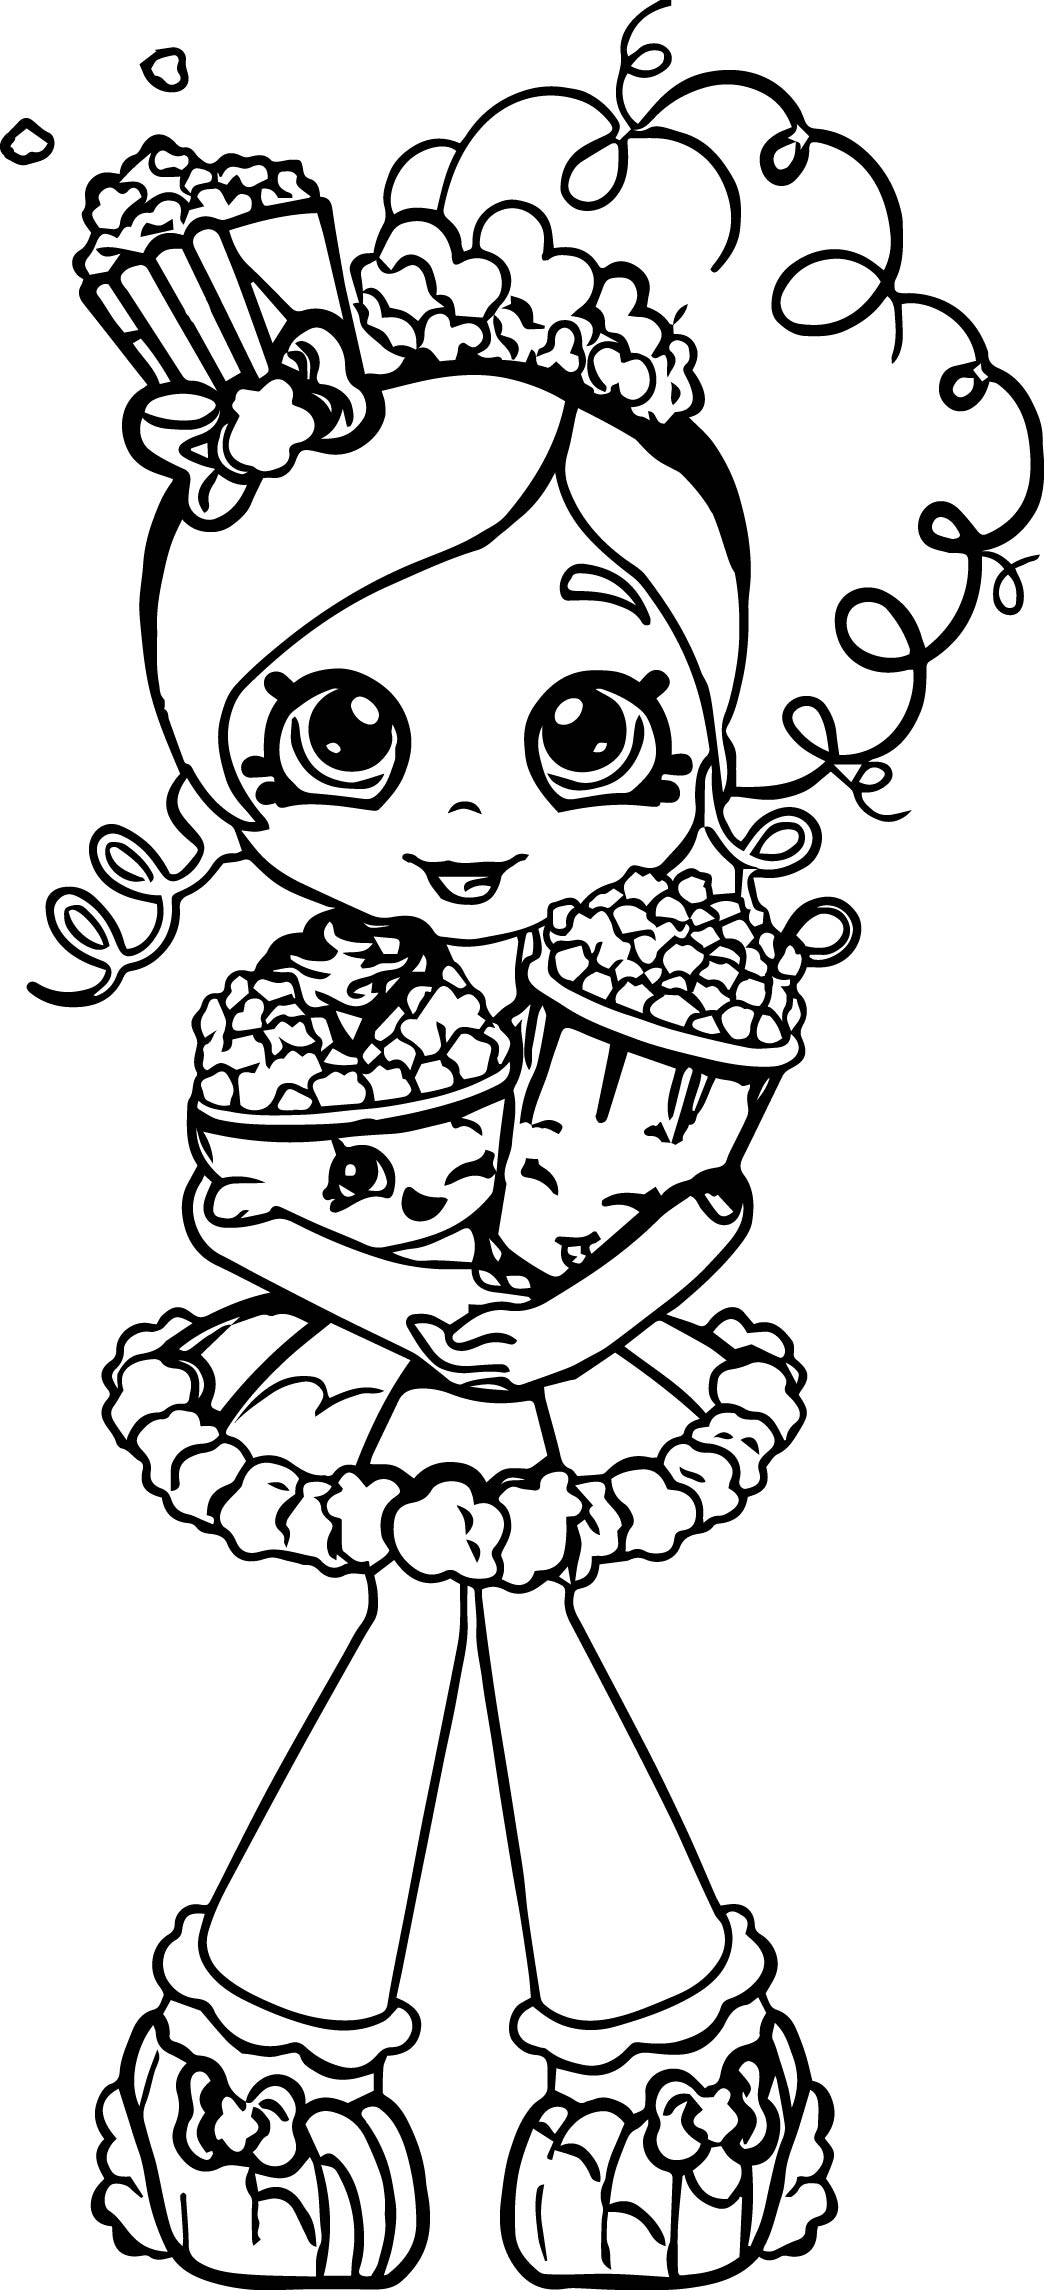 shopkin doll coloring pages - photo#36